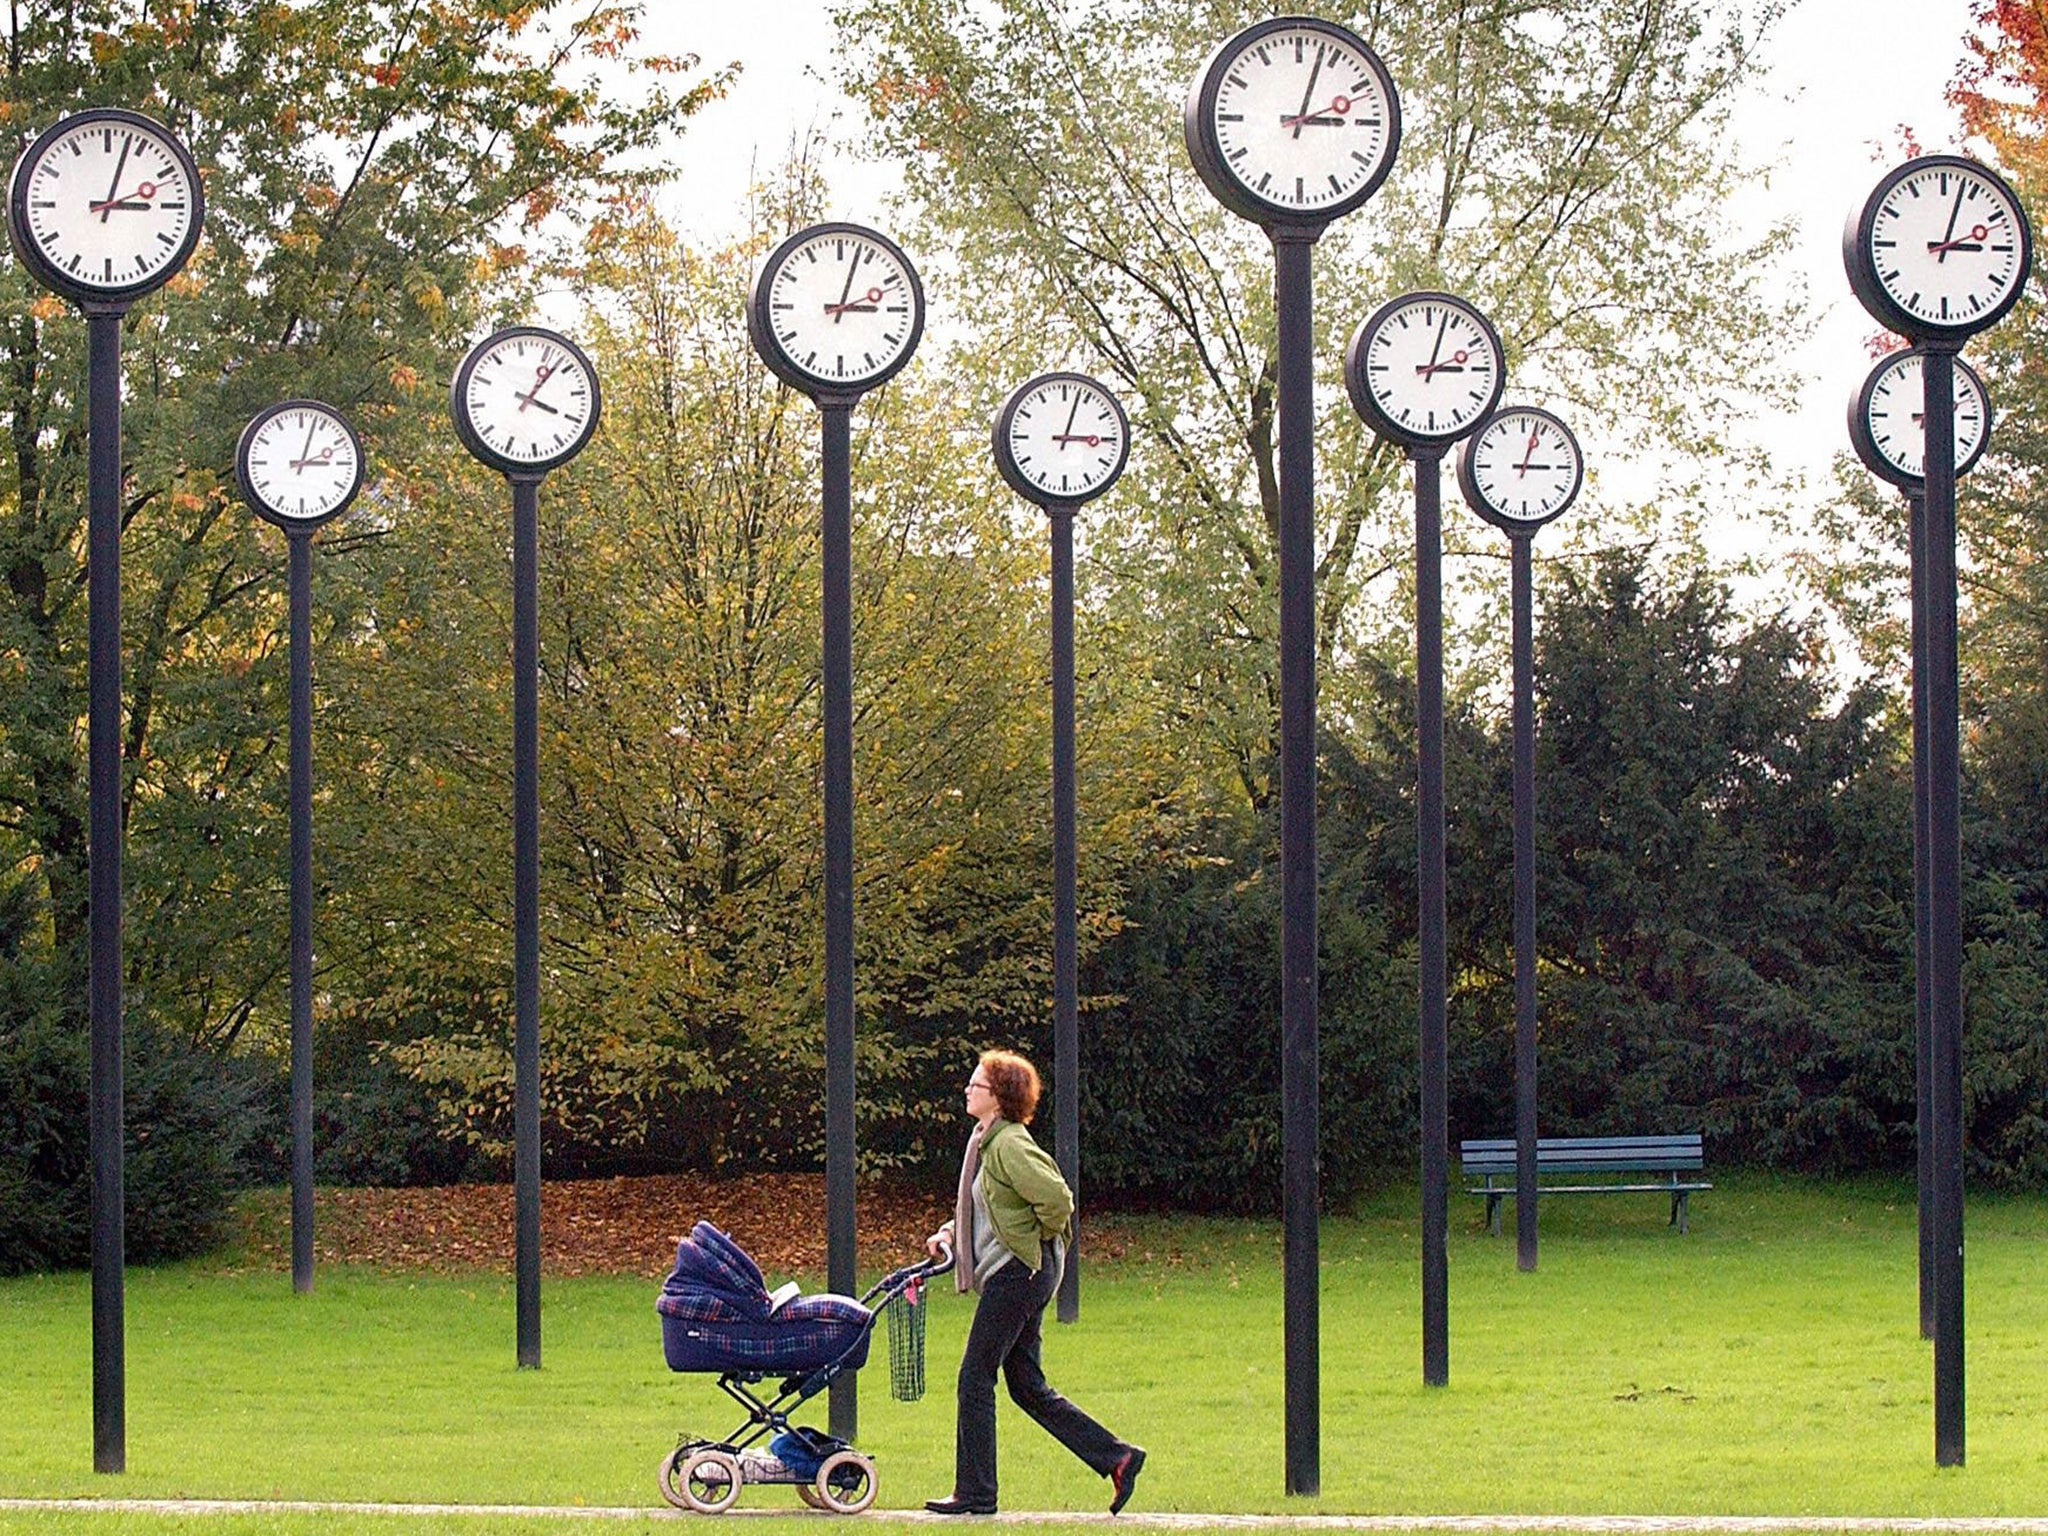 Universal Time The Radical Plan To Destroy Time Zones The - Us map with time zones hightlighted